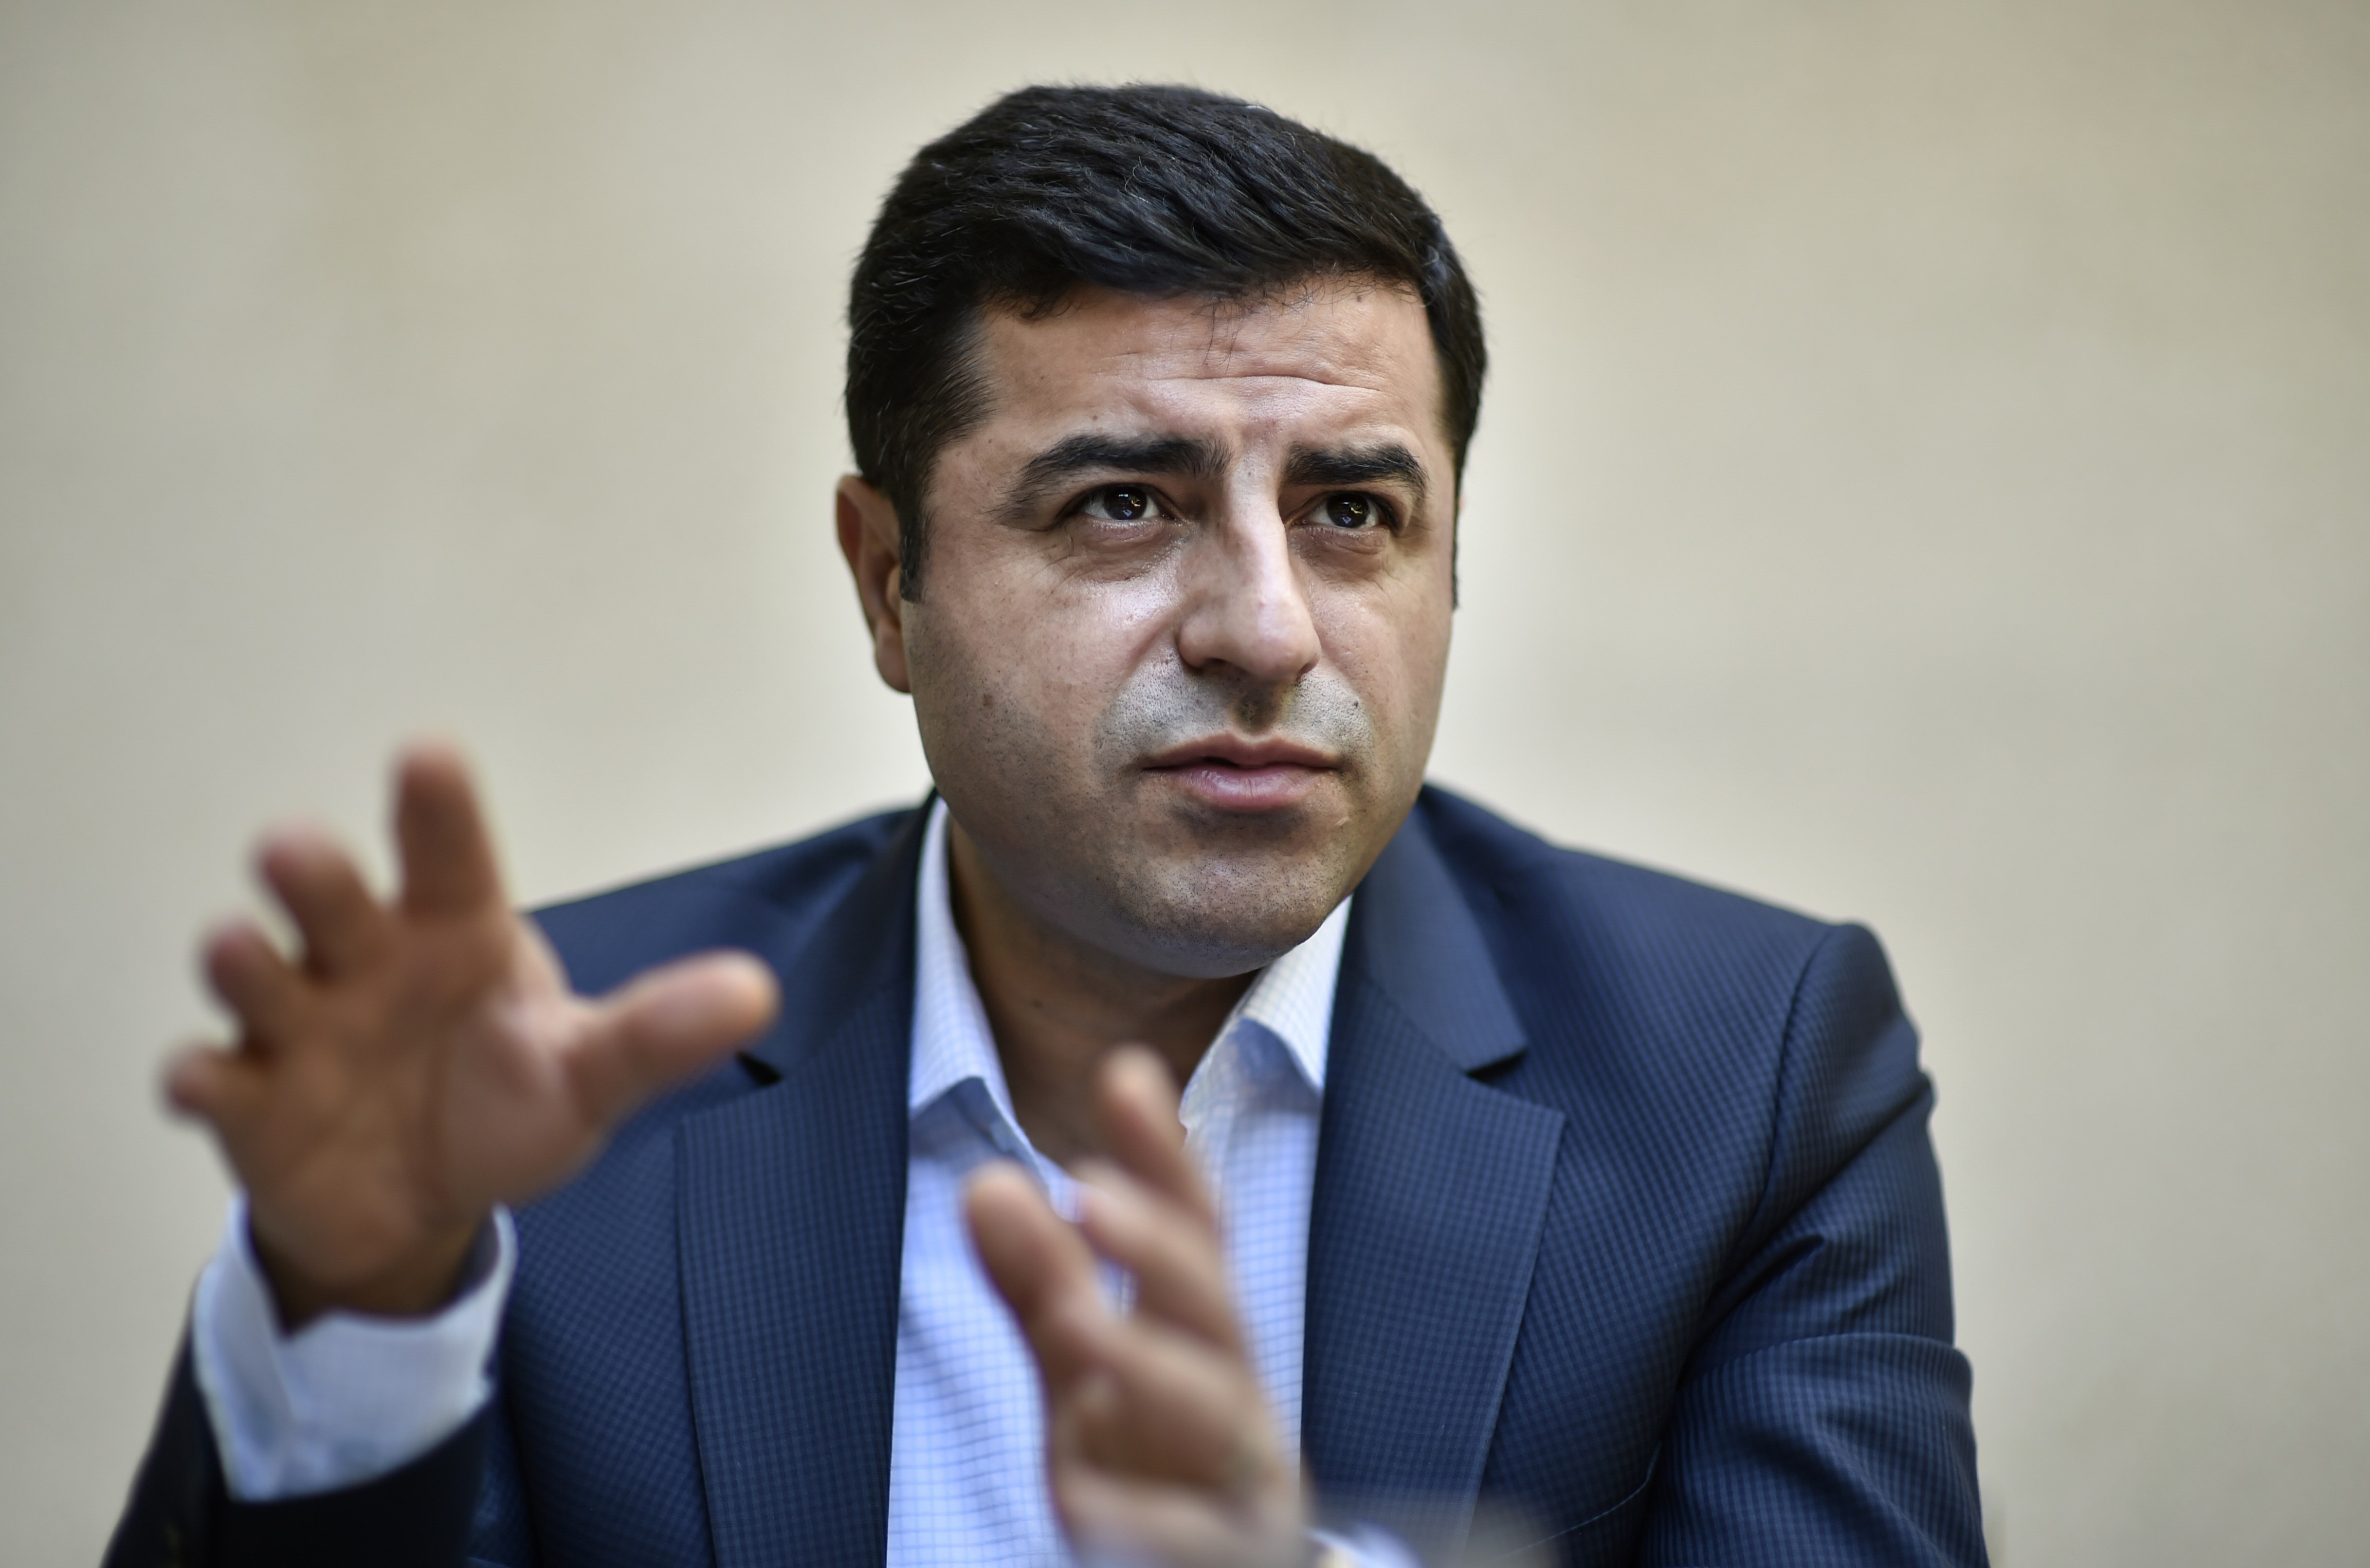 Selahattin Demirtas, co-leader of Turkey's pro-Kurdish People's Democratic Party (HDP), speaks during an interview with AFP in Brussels on Aug. 6, 2015.